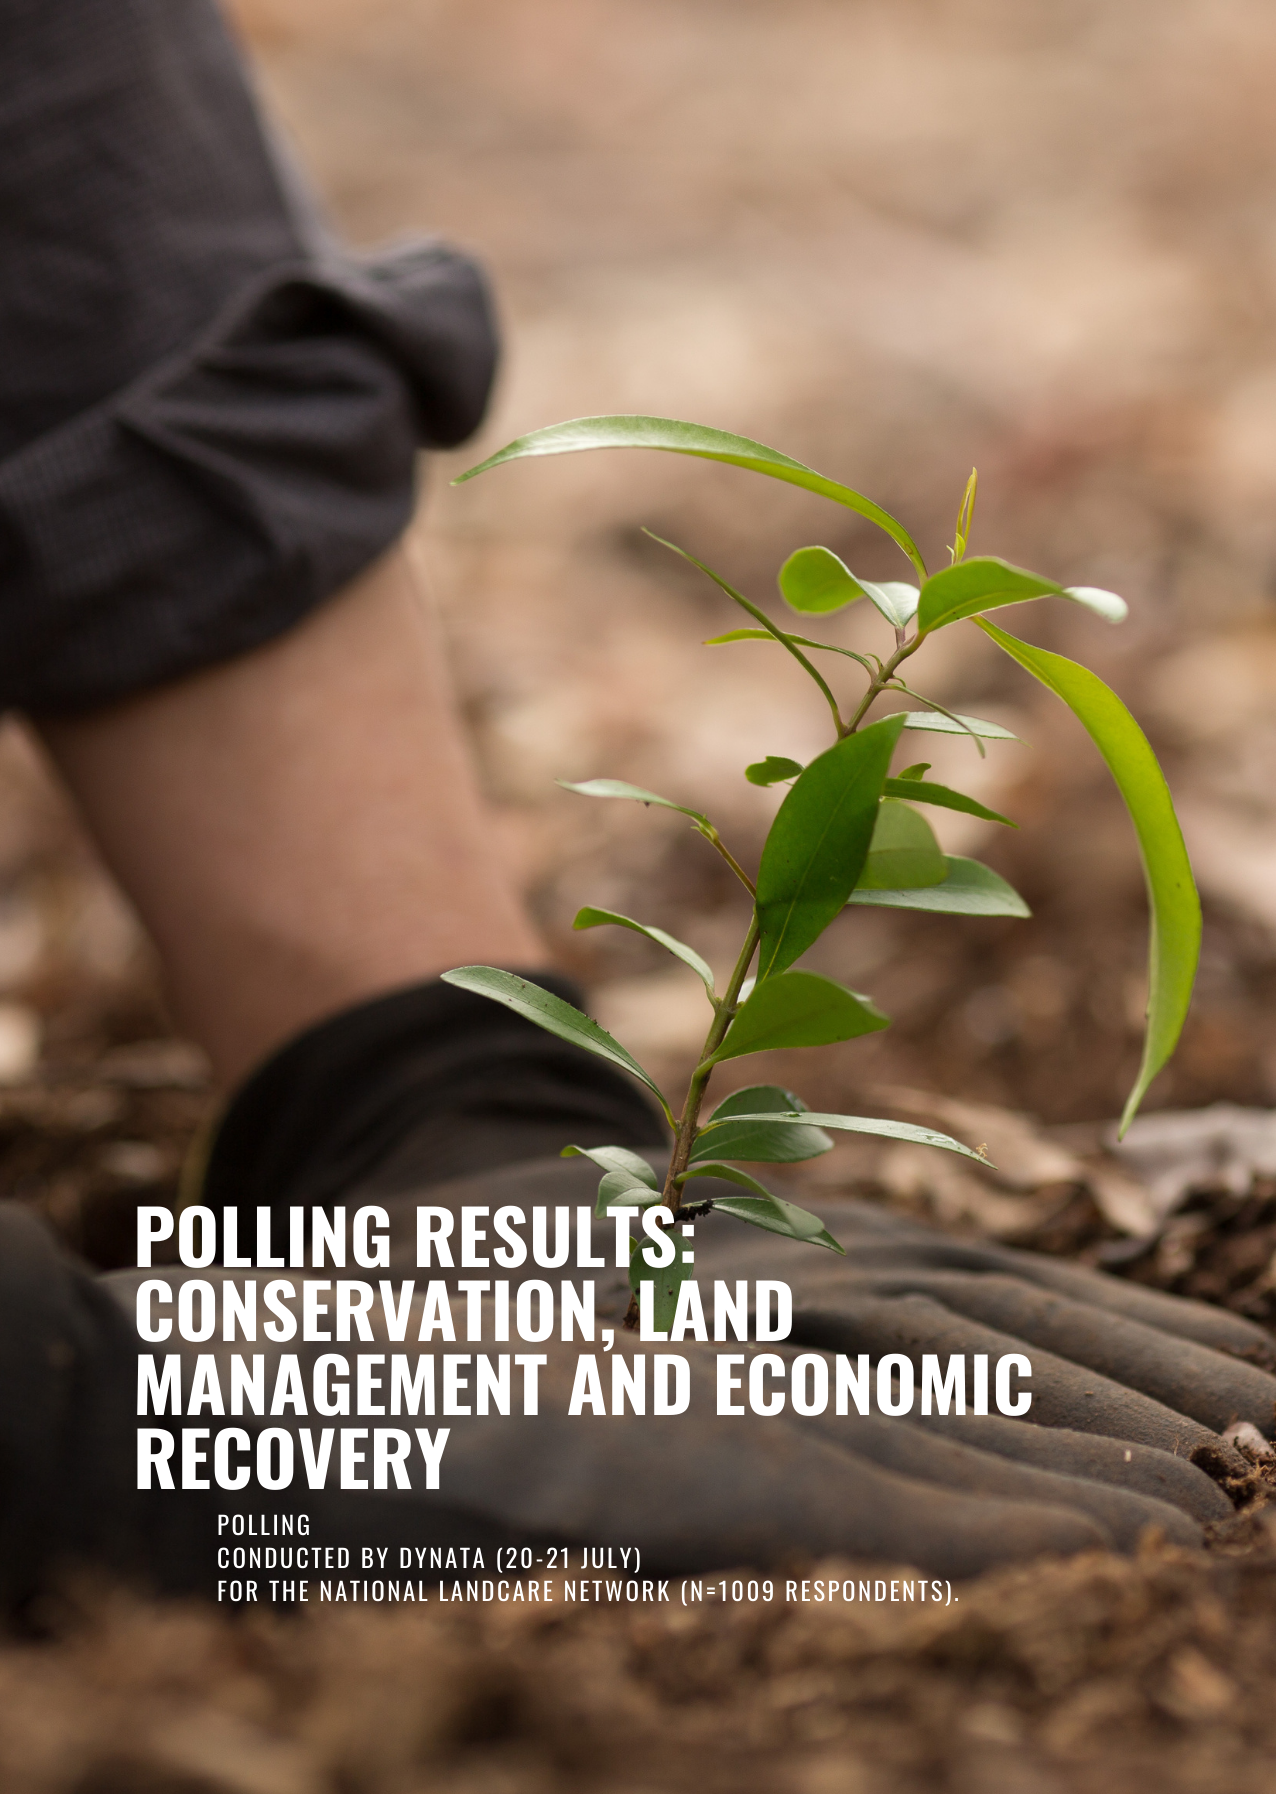 Polling results – conservation, land management and economic recovery